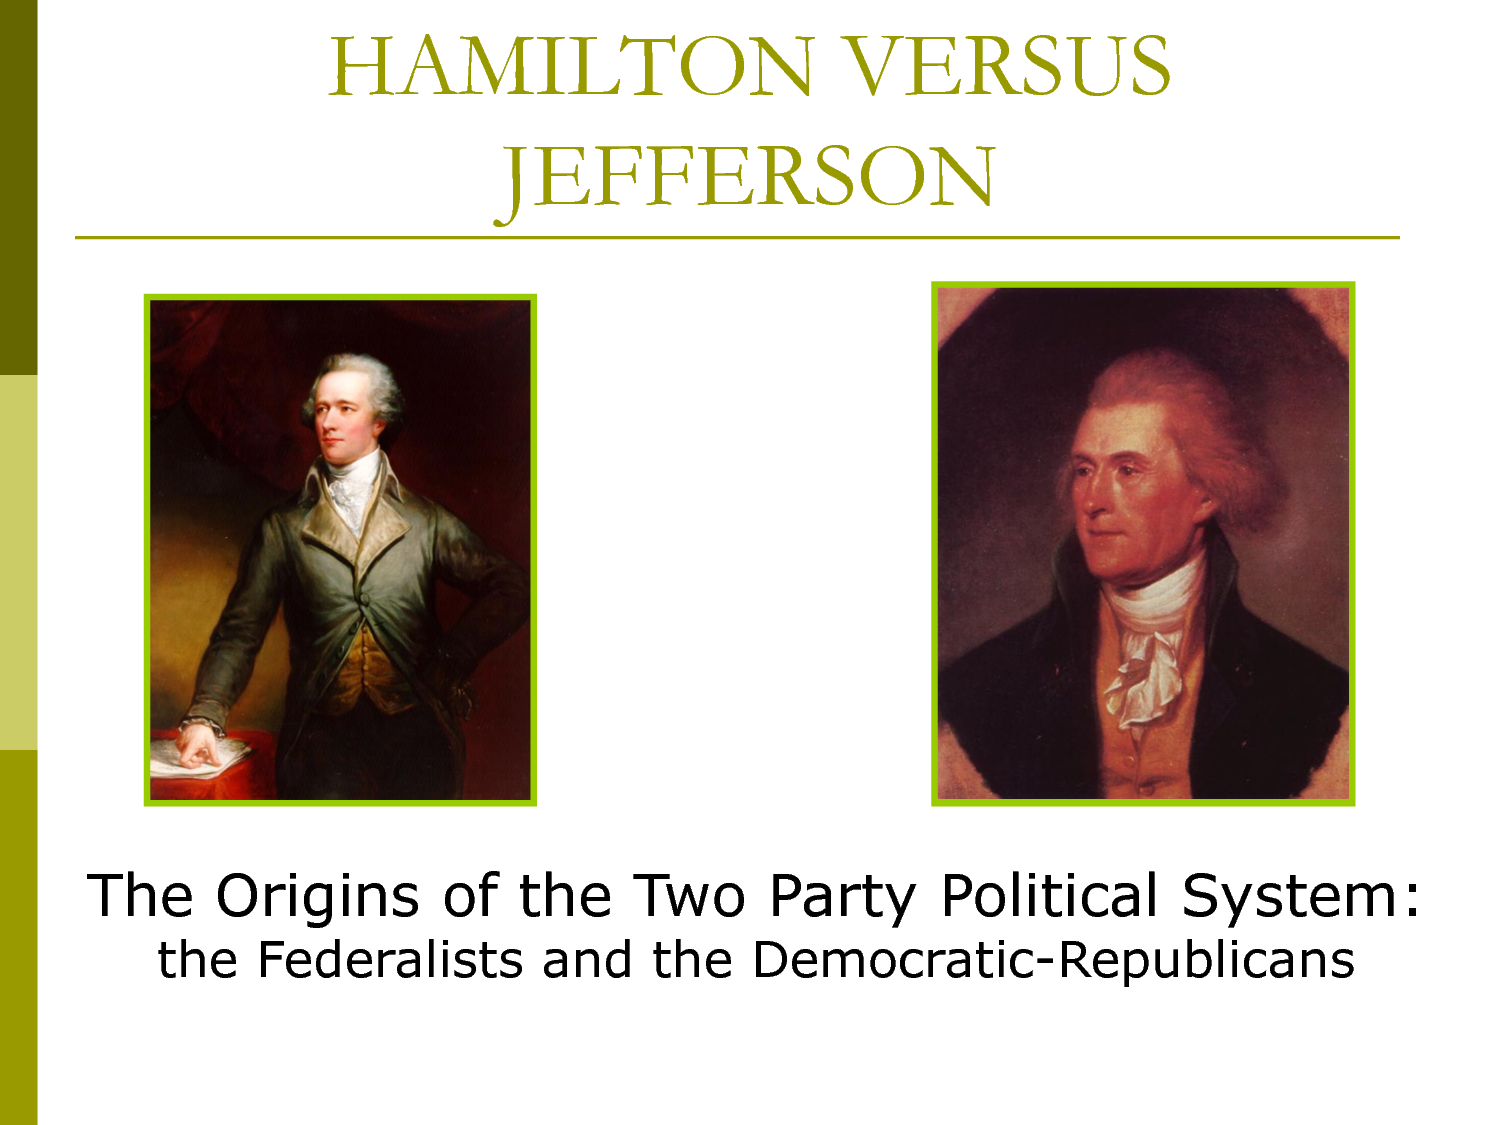 federalist party The federalist party of the united states was opposed by the democratic-republicans, including powerful figures such as thomas jefferson.